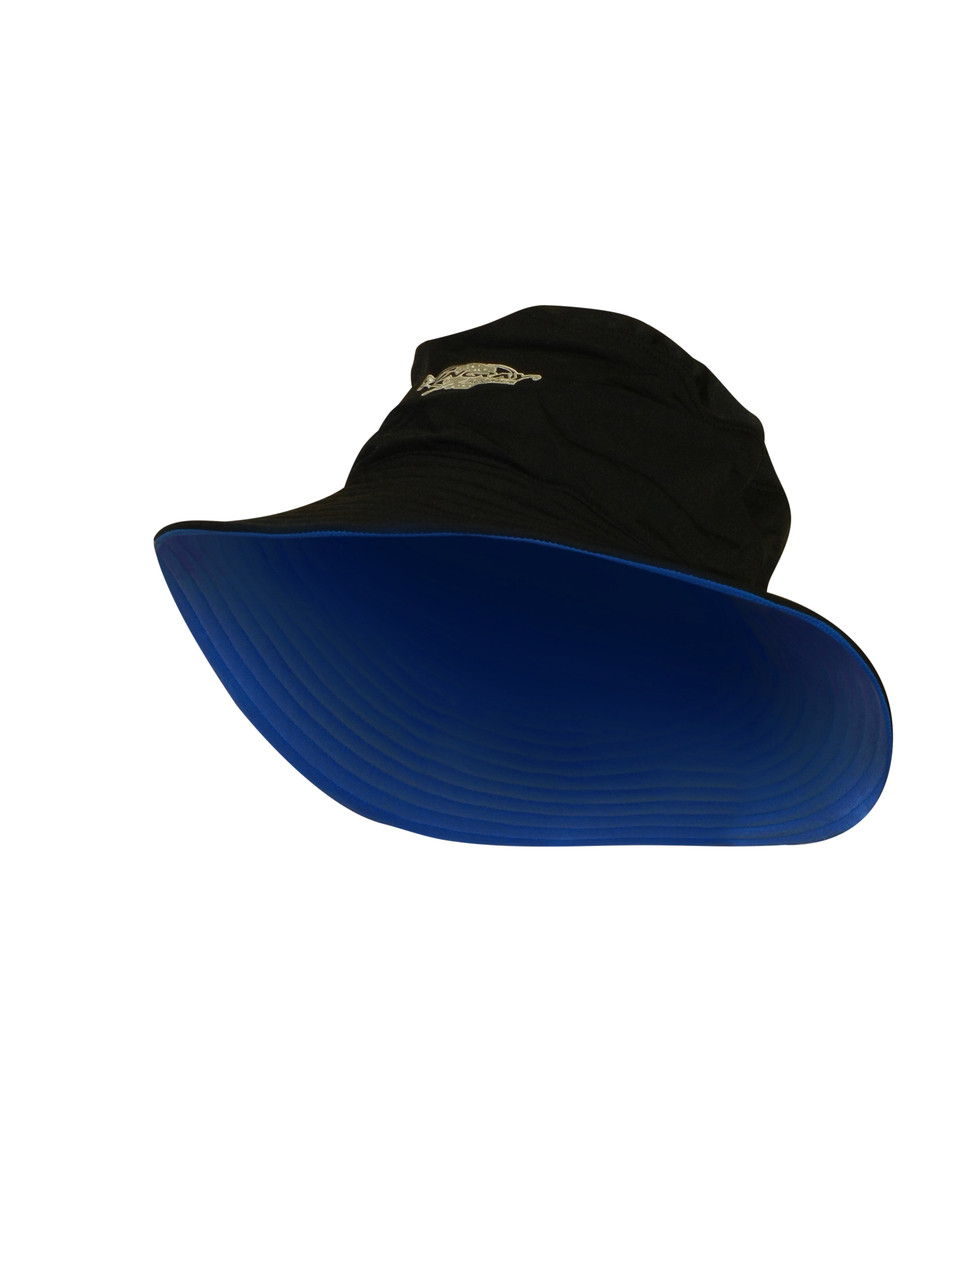 ADULT BUCKET HAT BLACK OCEAN BLUE - Stingray International 41024eead1d